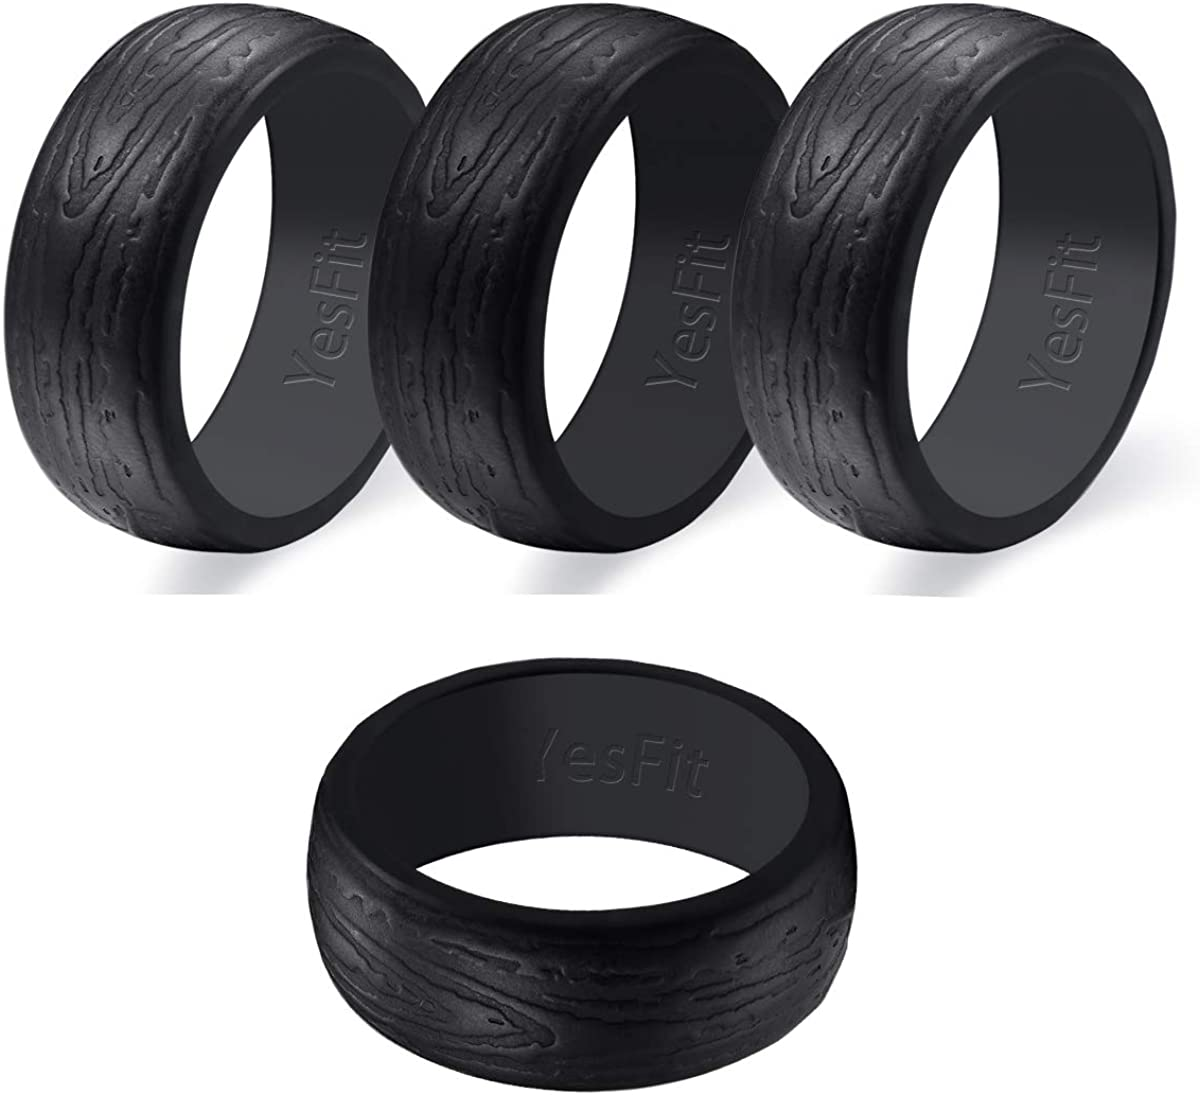 1 Pack// 4 Pack Mens Classic Breathable Rubber Wedding Ring for Men YesFit Silicone Wedding Ring for Men Pure Black//Grey Color Thin Silicone Sports Bands with Gift Metal Box